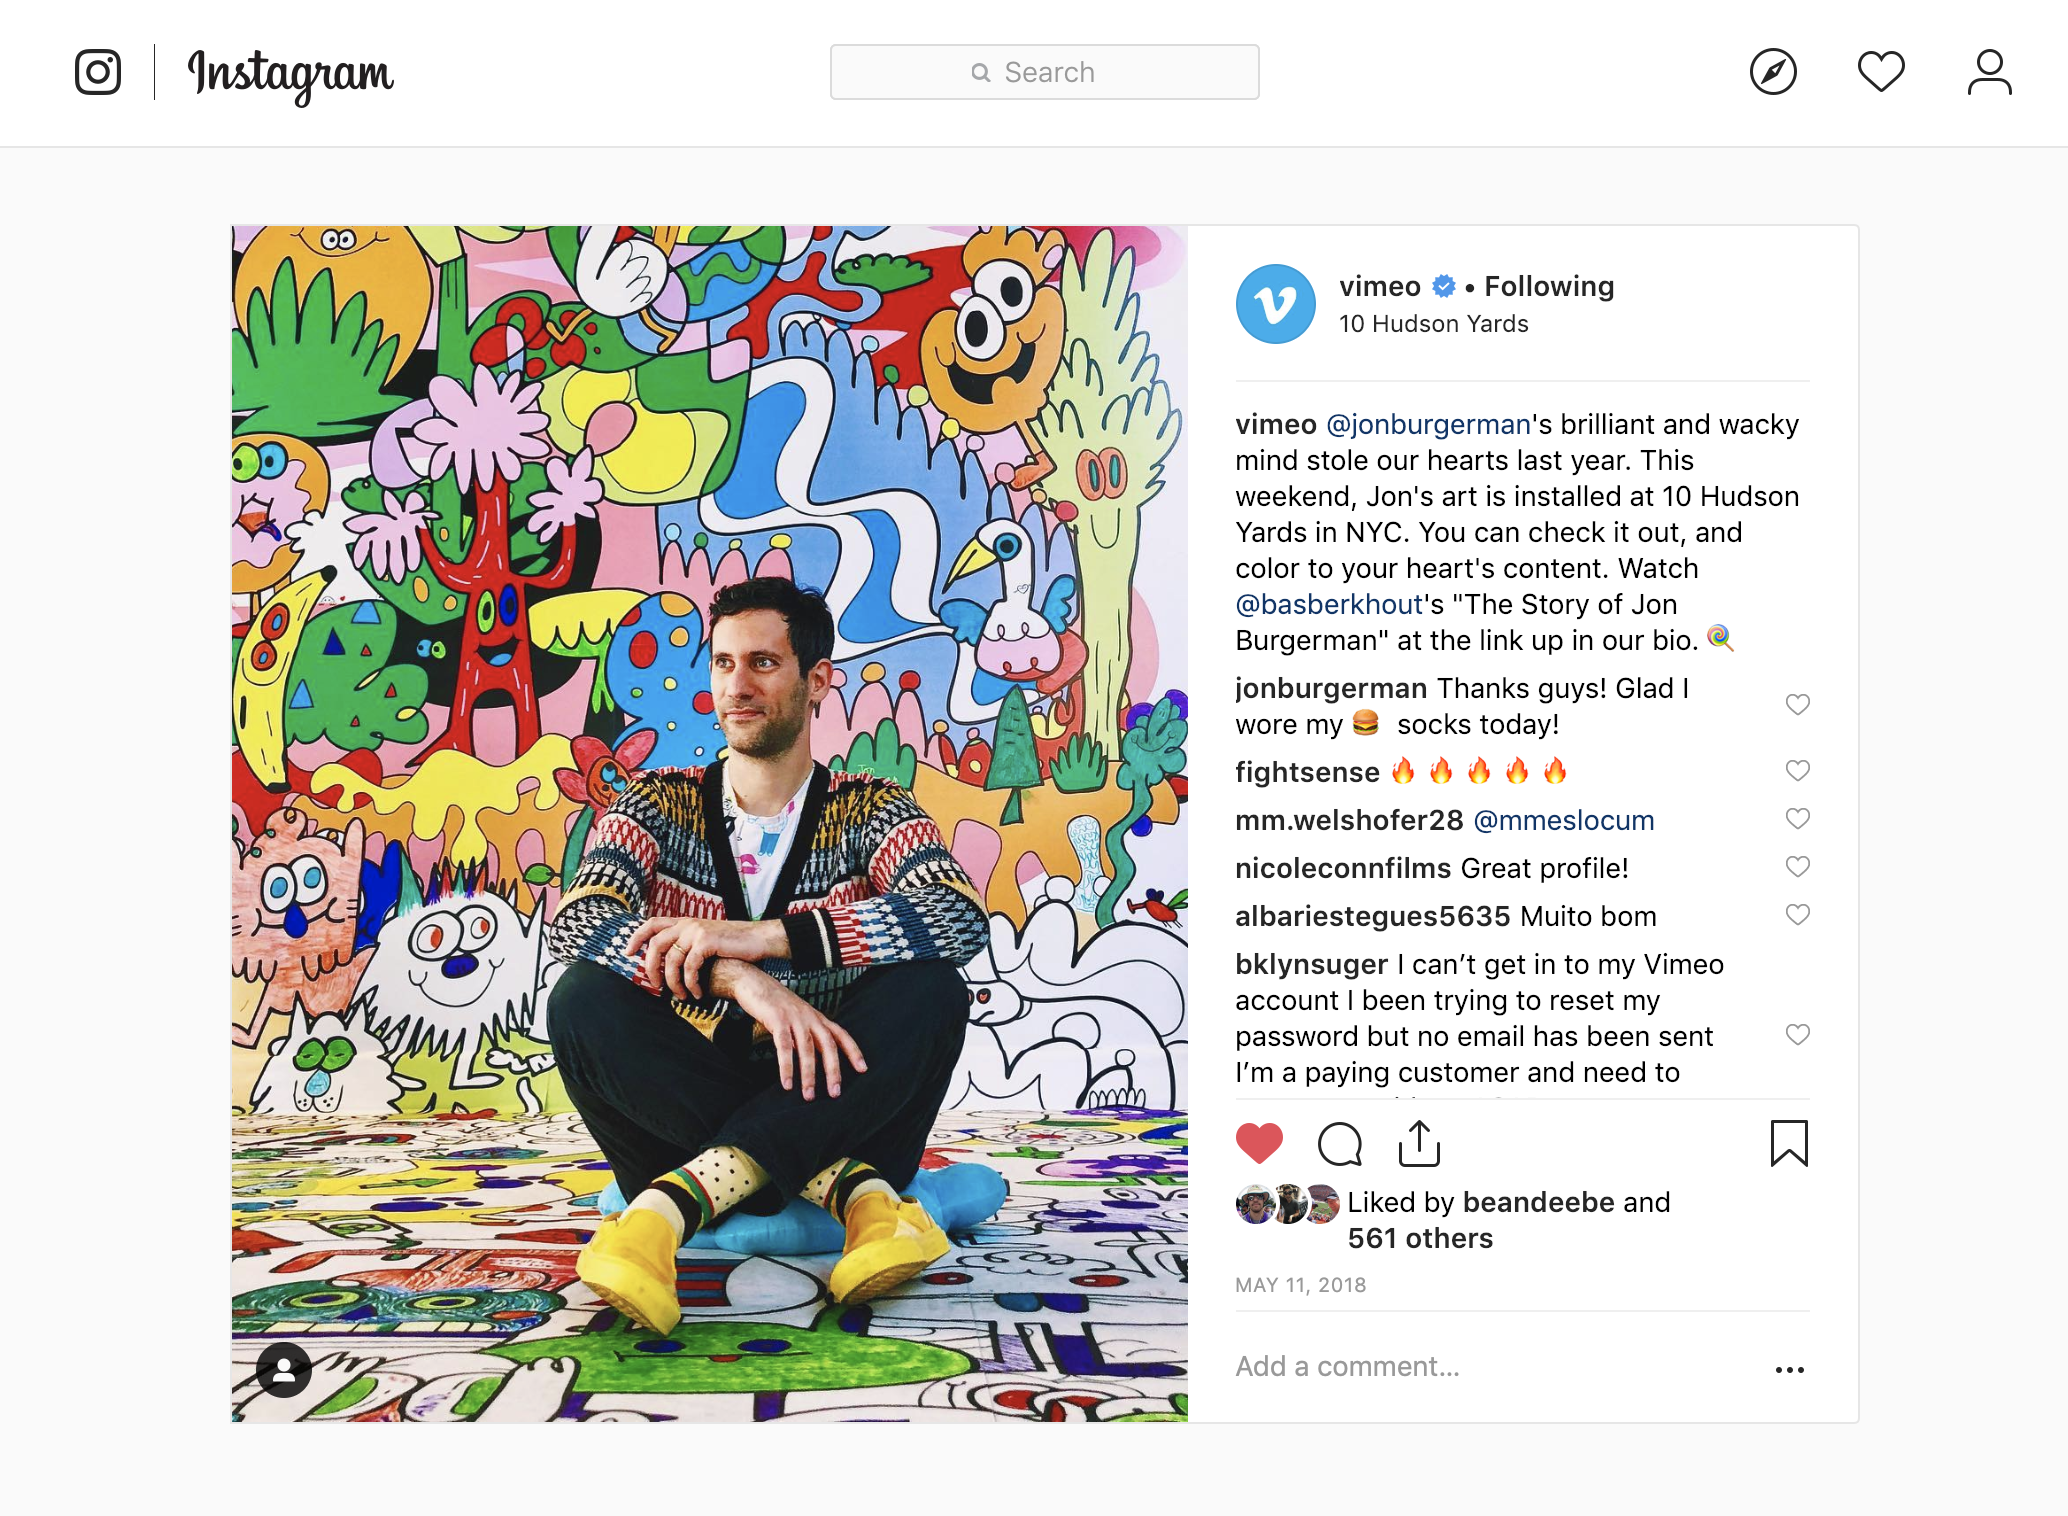 Photographing creators for social media promotion (Illustrator  Jon Burgerman  photographed by me)